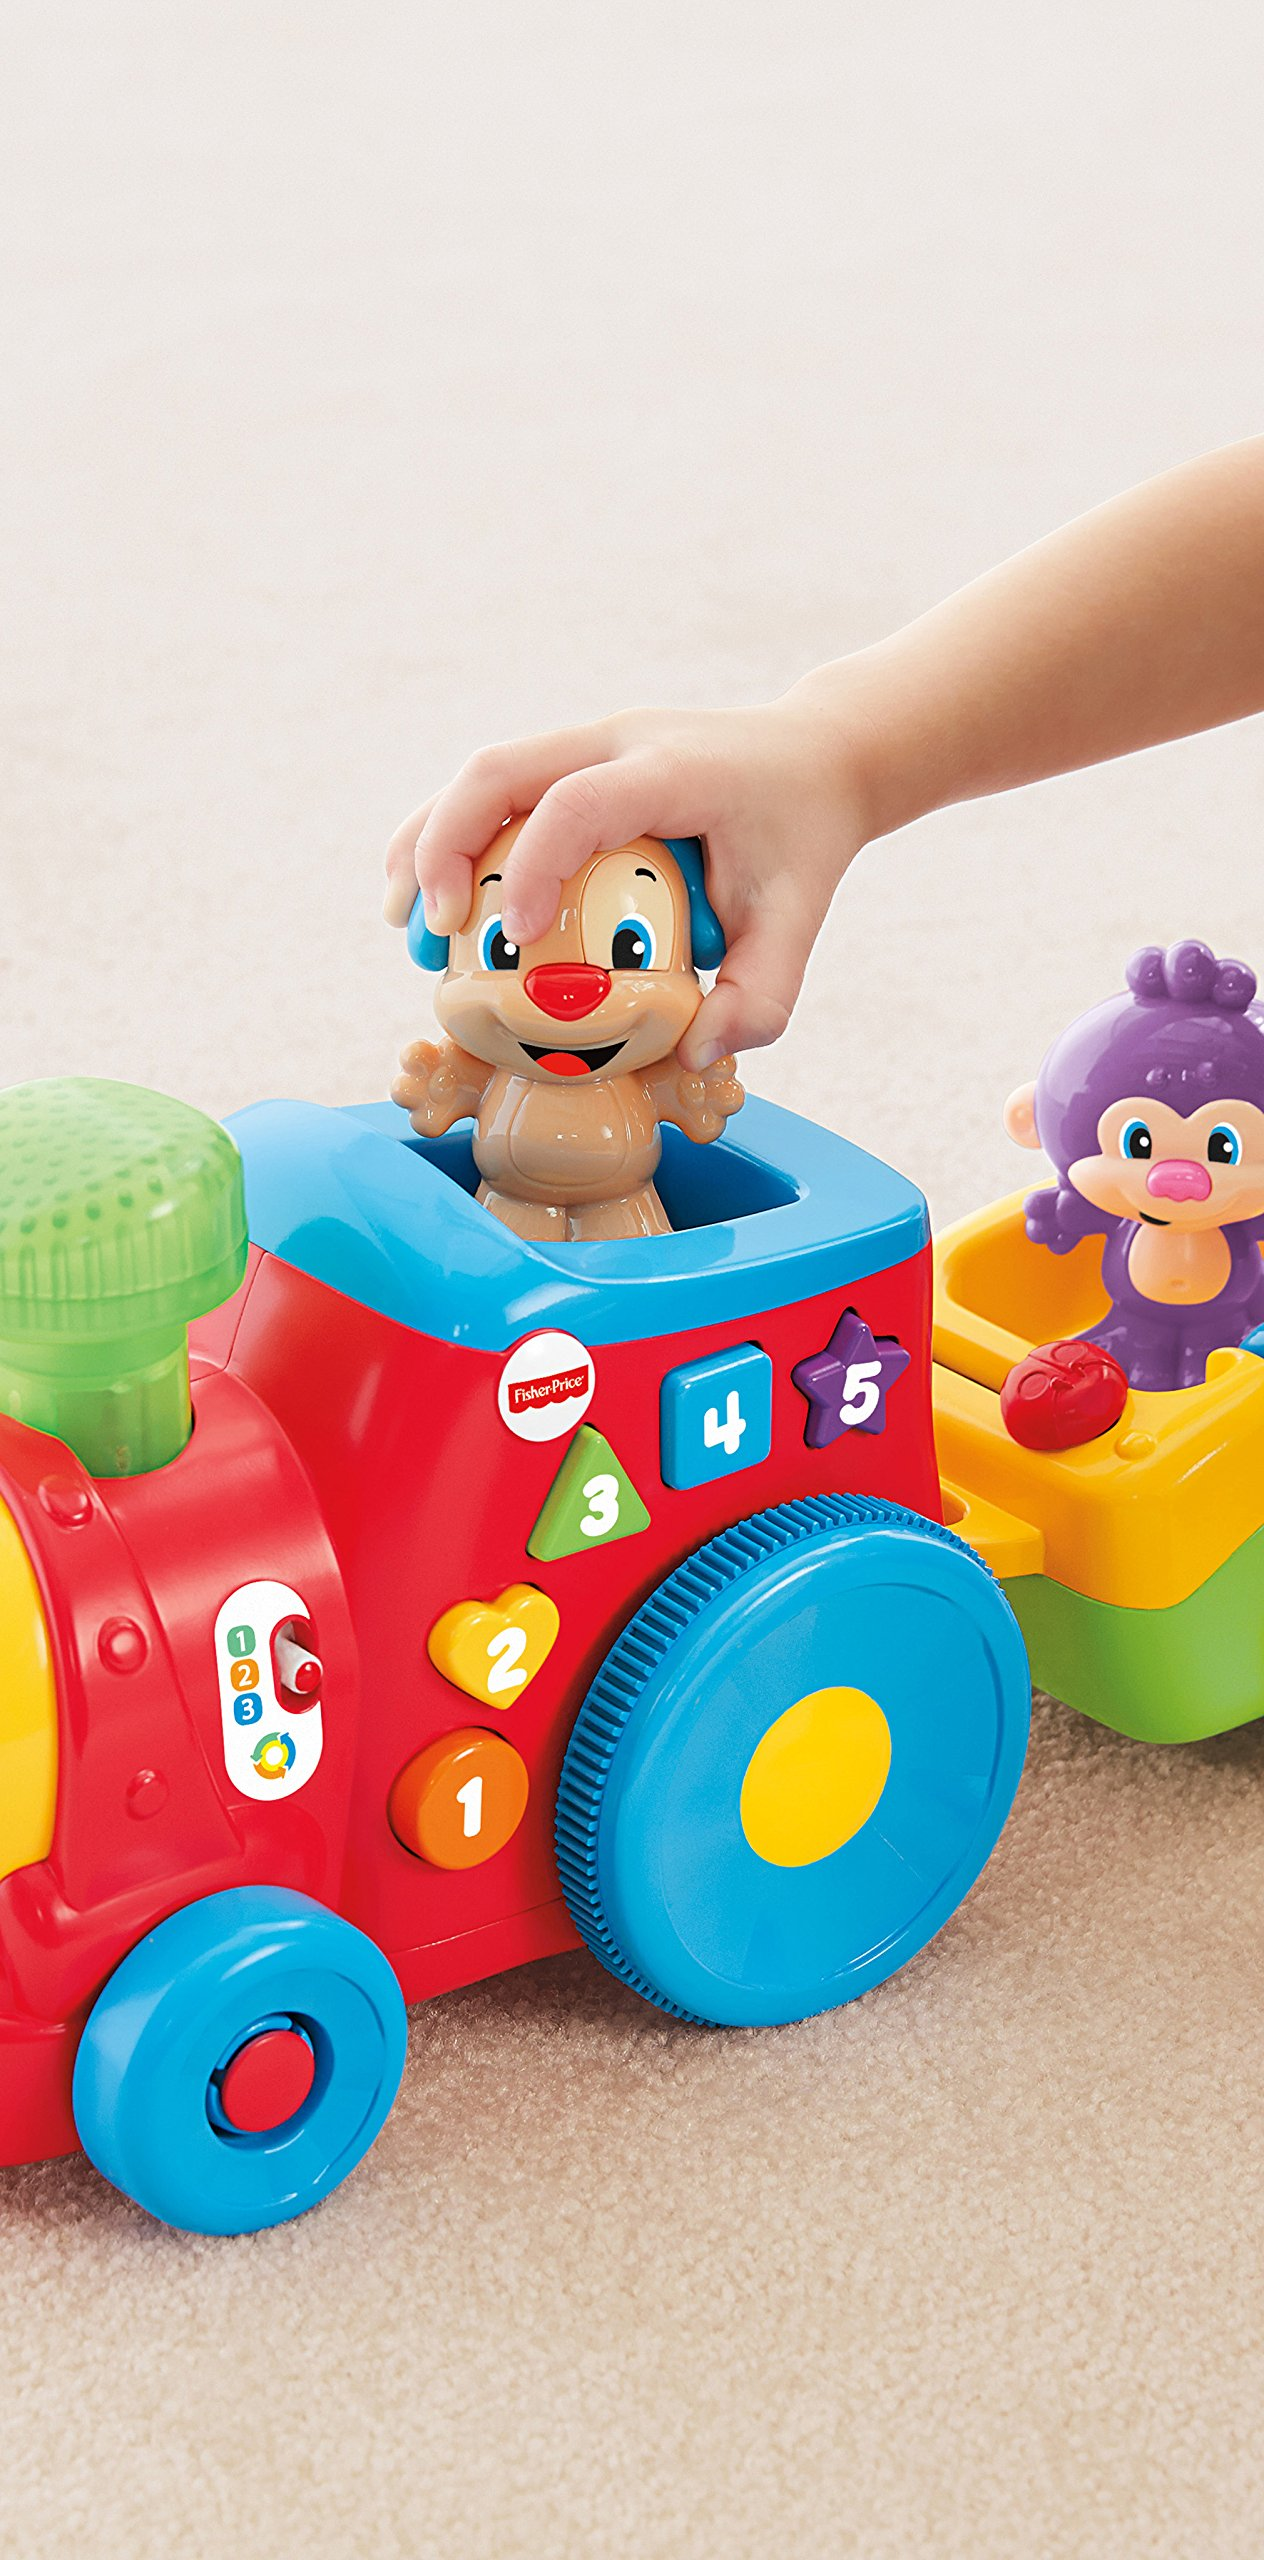 Fisher-Price Laugh & Learn Smart Stages Puppy's Smart Train by Fisher-Price (Image #13)